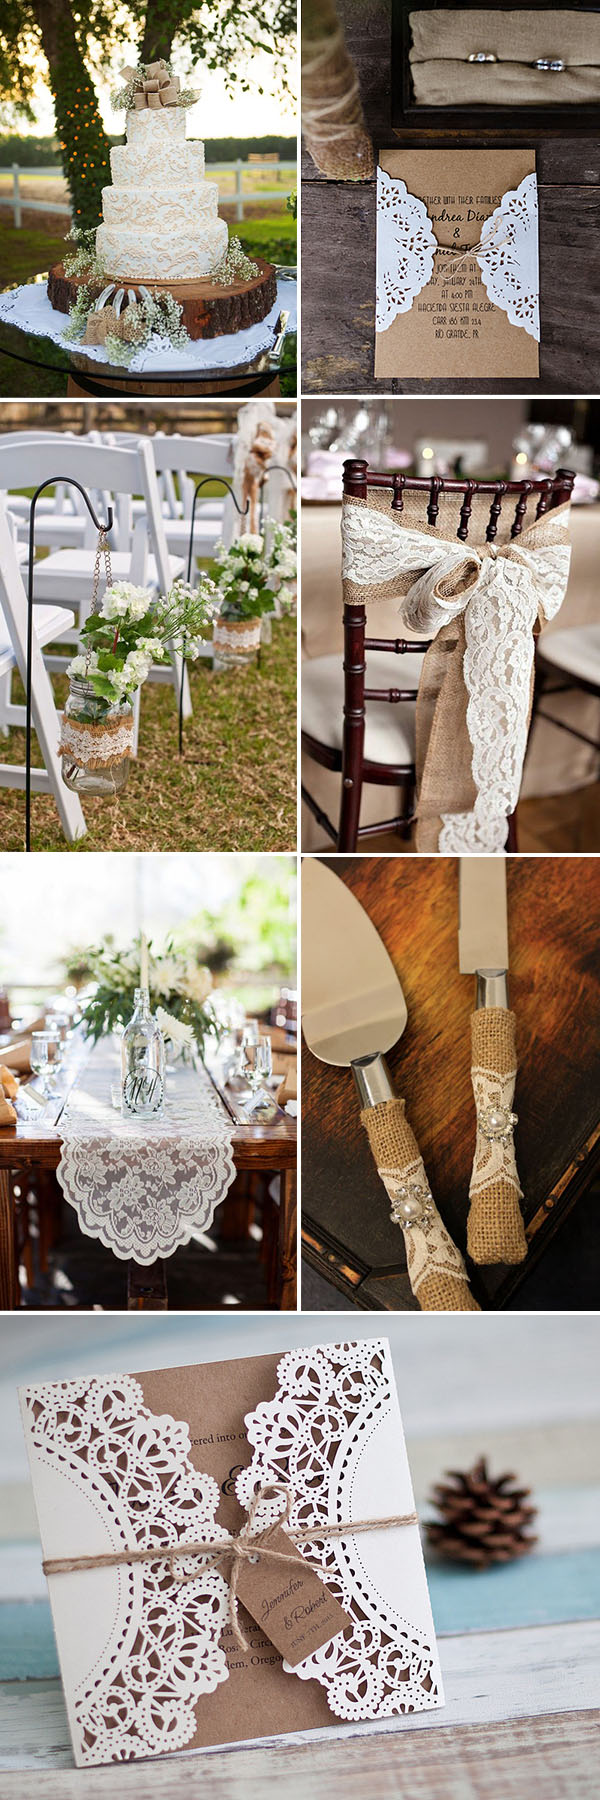 lace and burlap rustic vintage wedding ideas and invitations